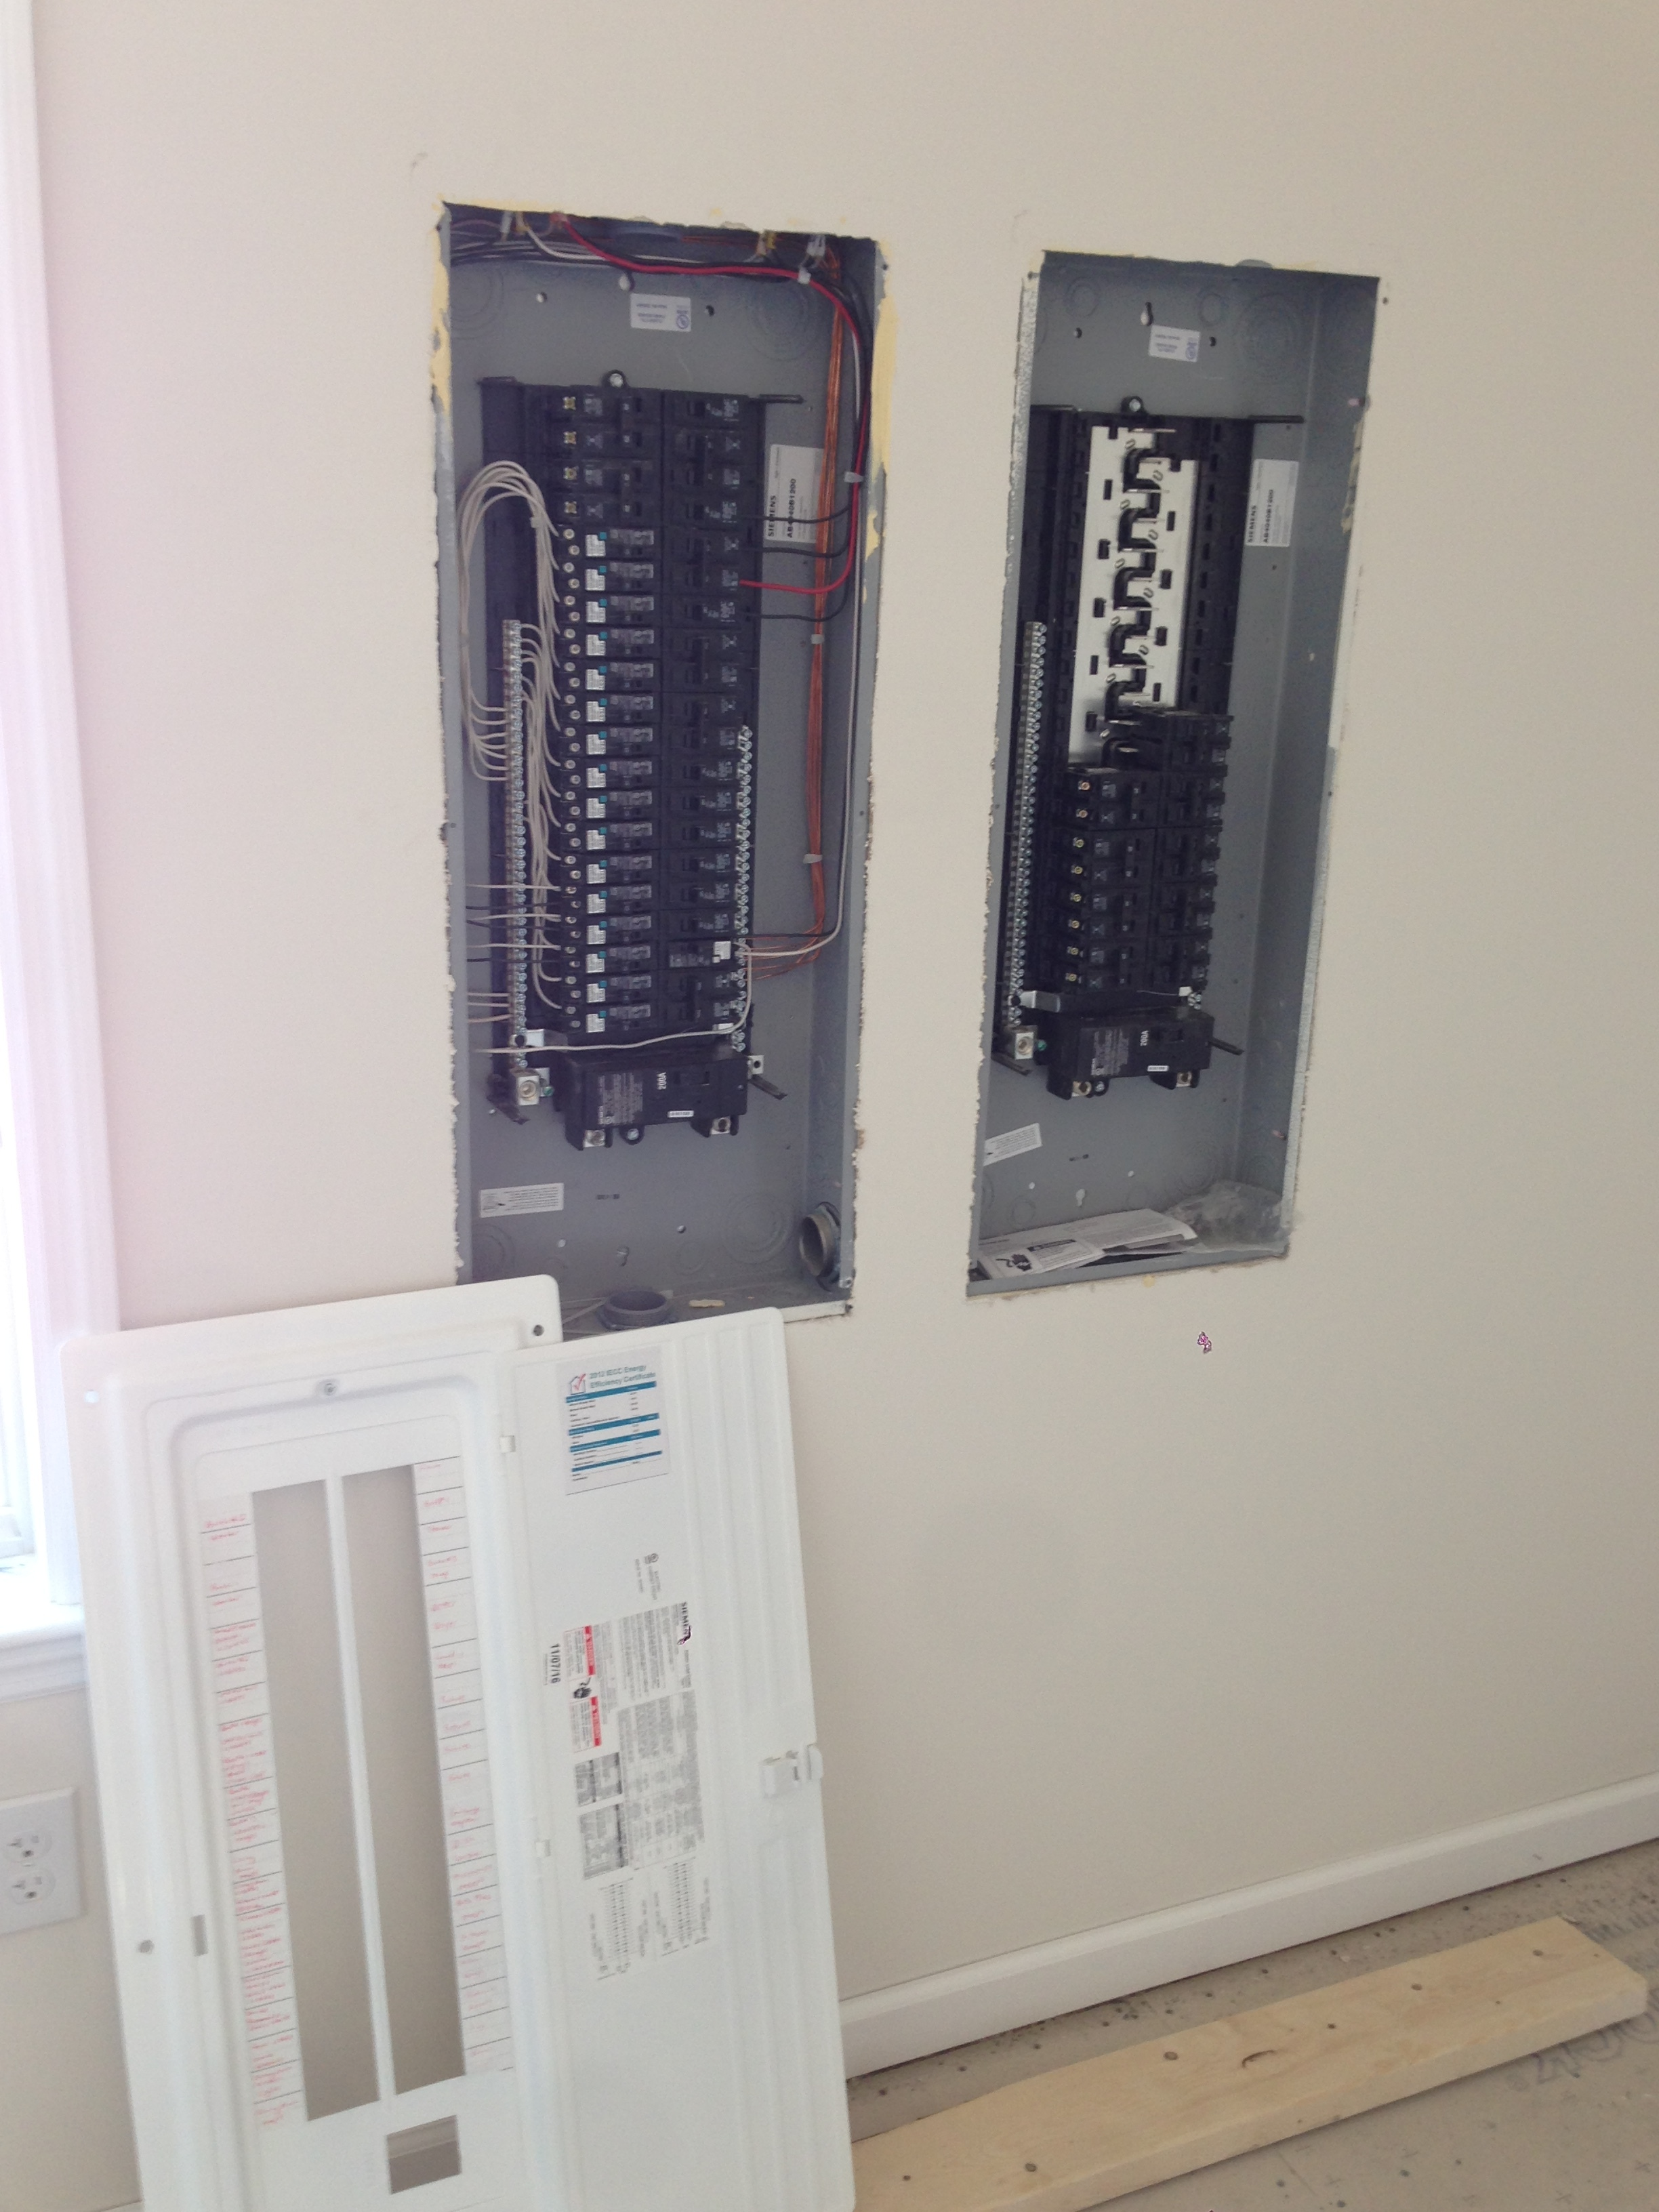 Electric Panel removed. The one on the left are for the first two floors as provided by Excel all pre-wired. The right panel is for the basement and any other items added on site.